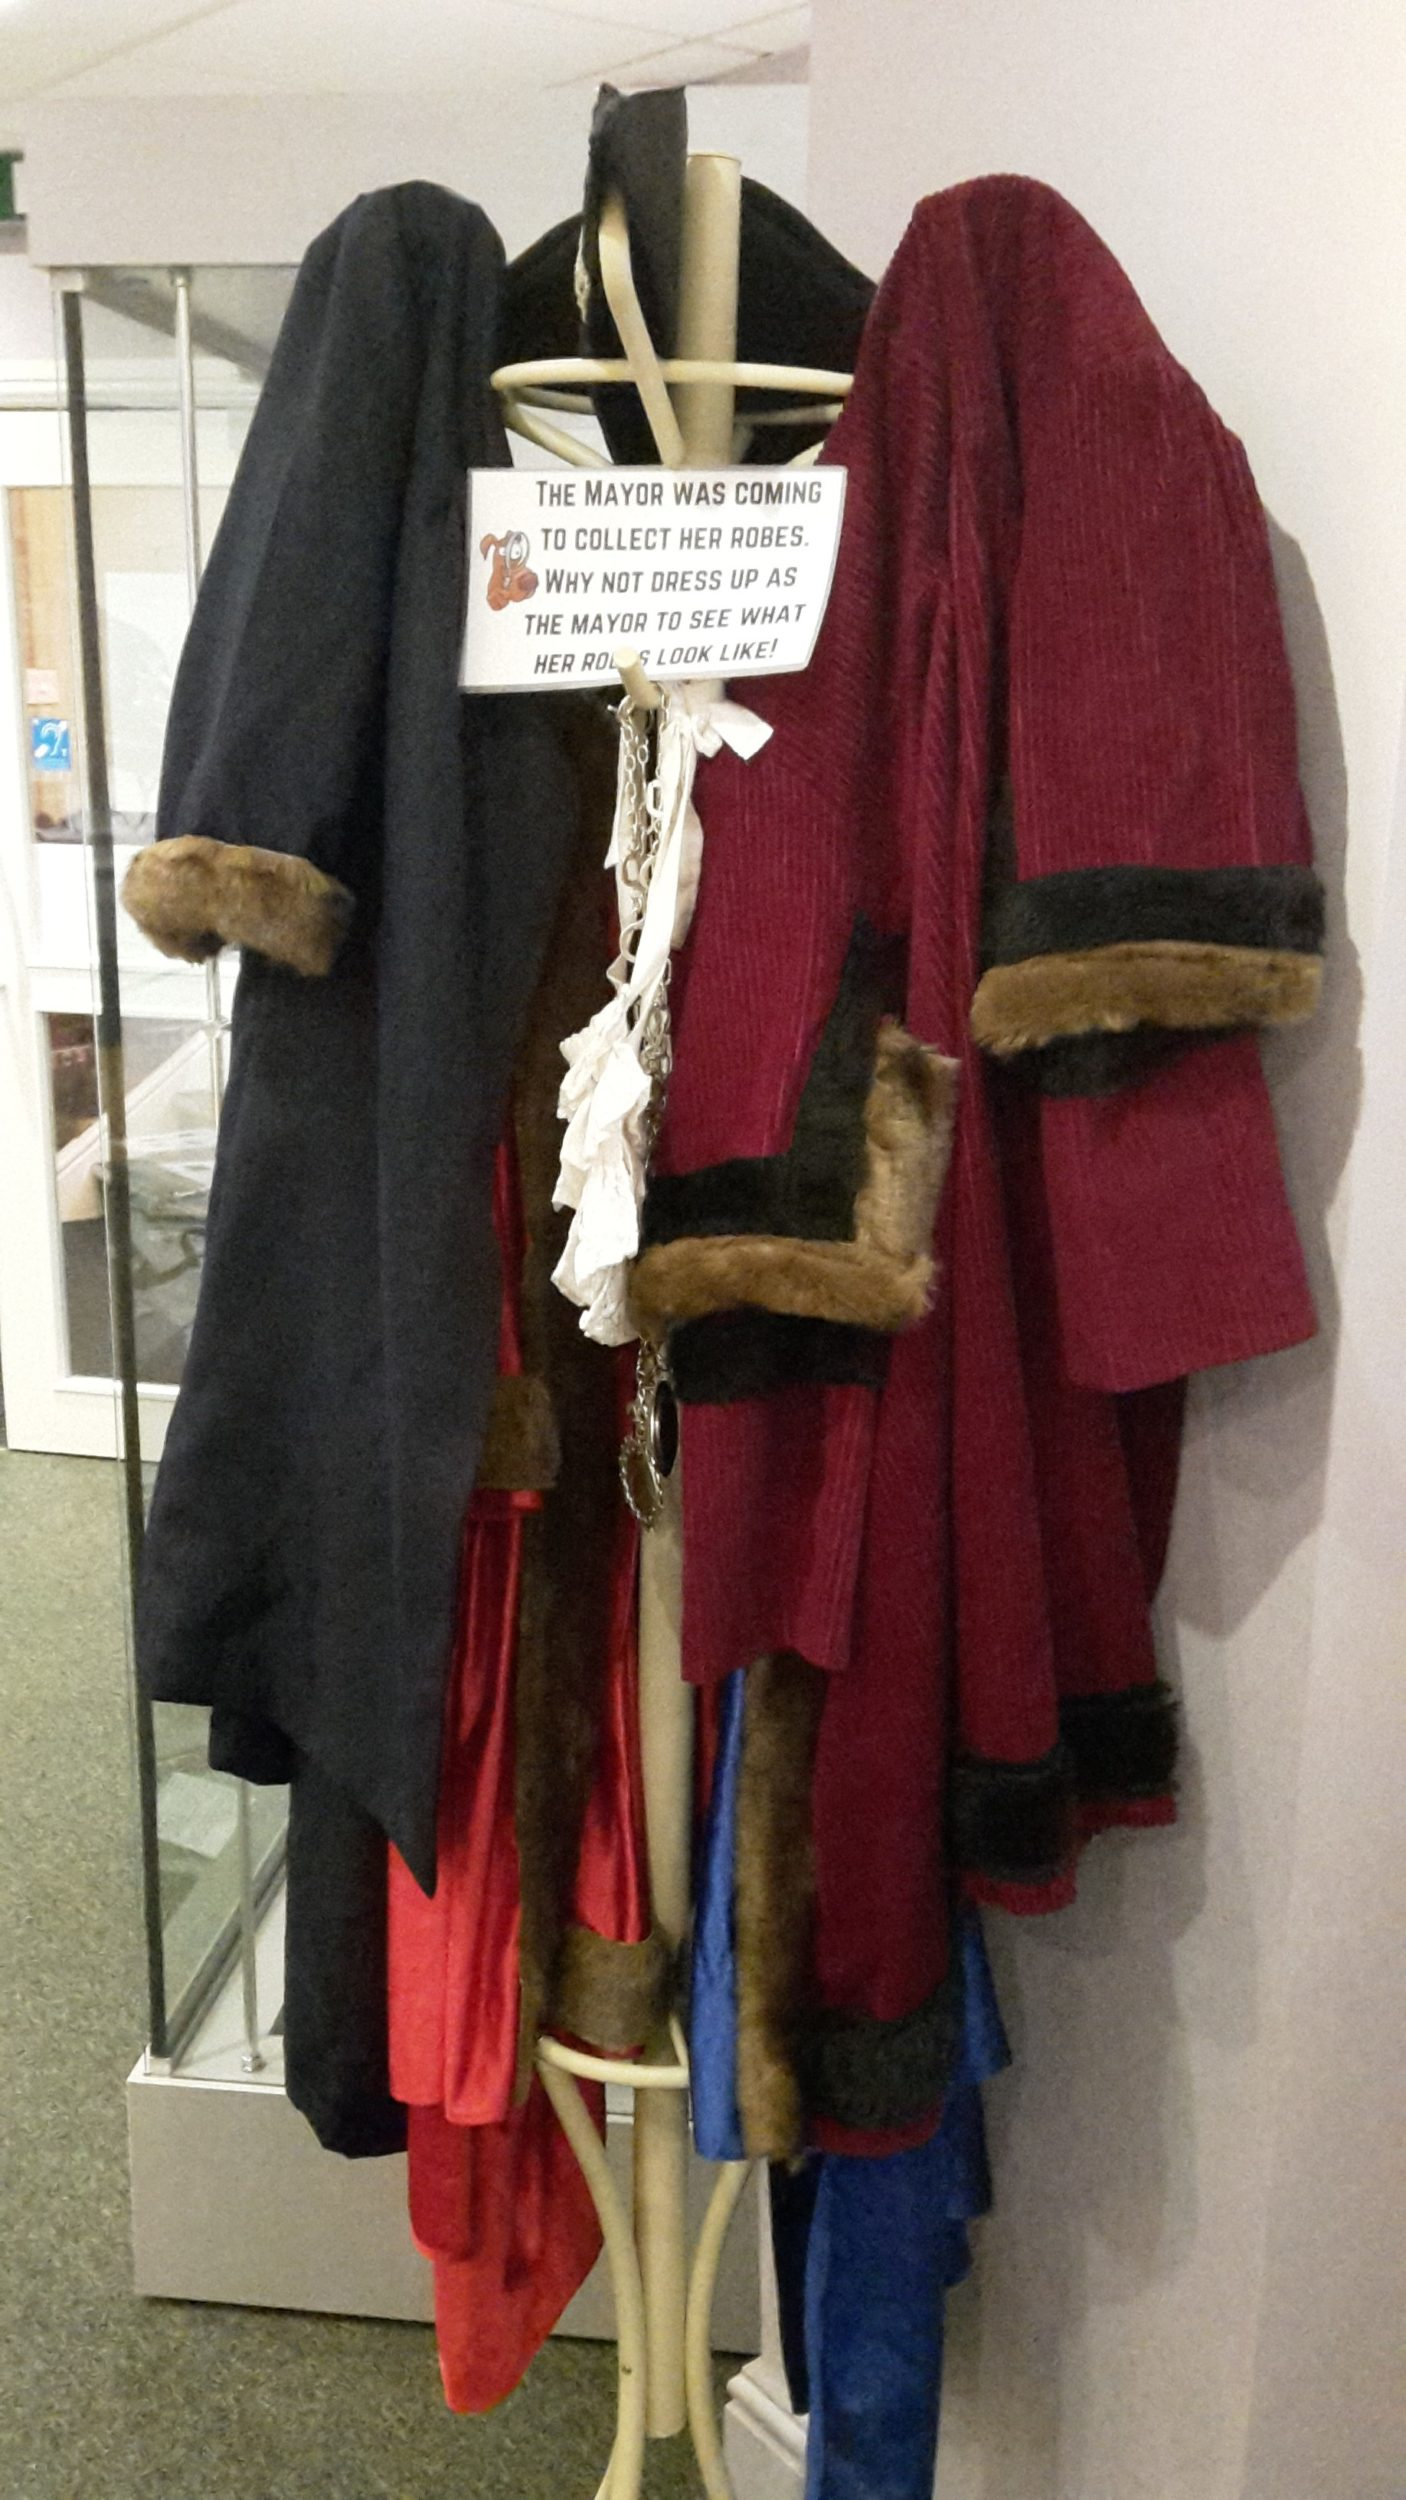 Image of Mayor robes on display for visitors to wear.